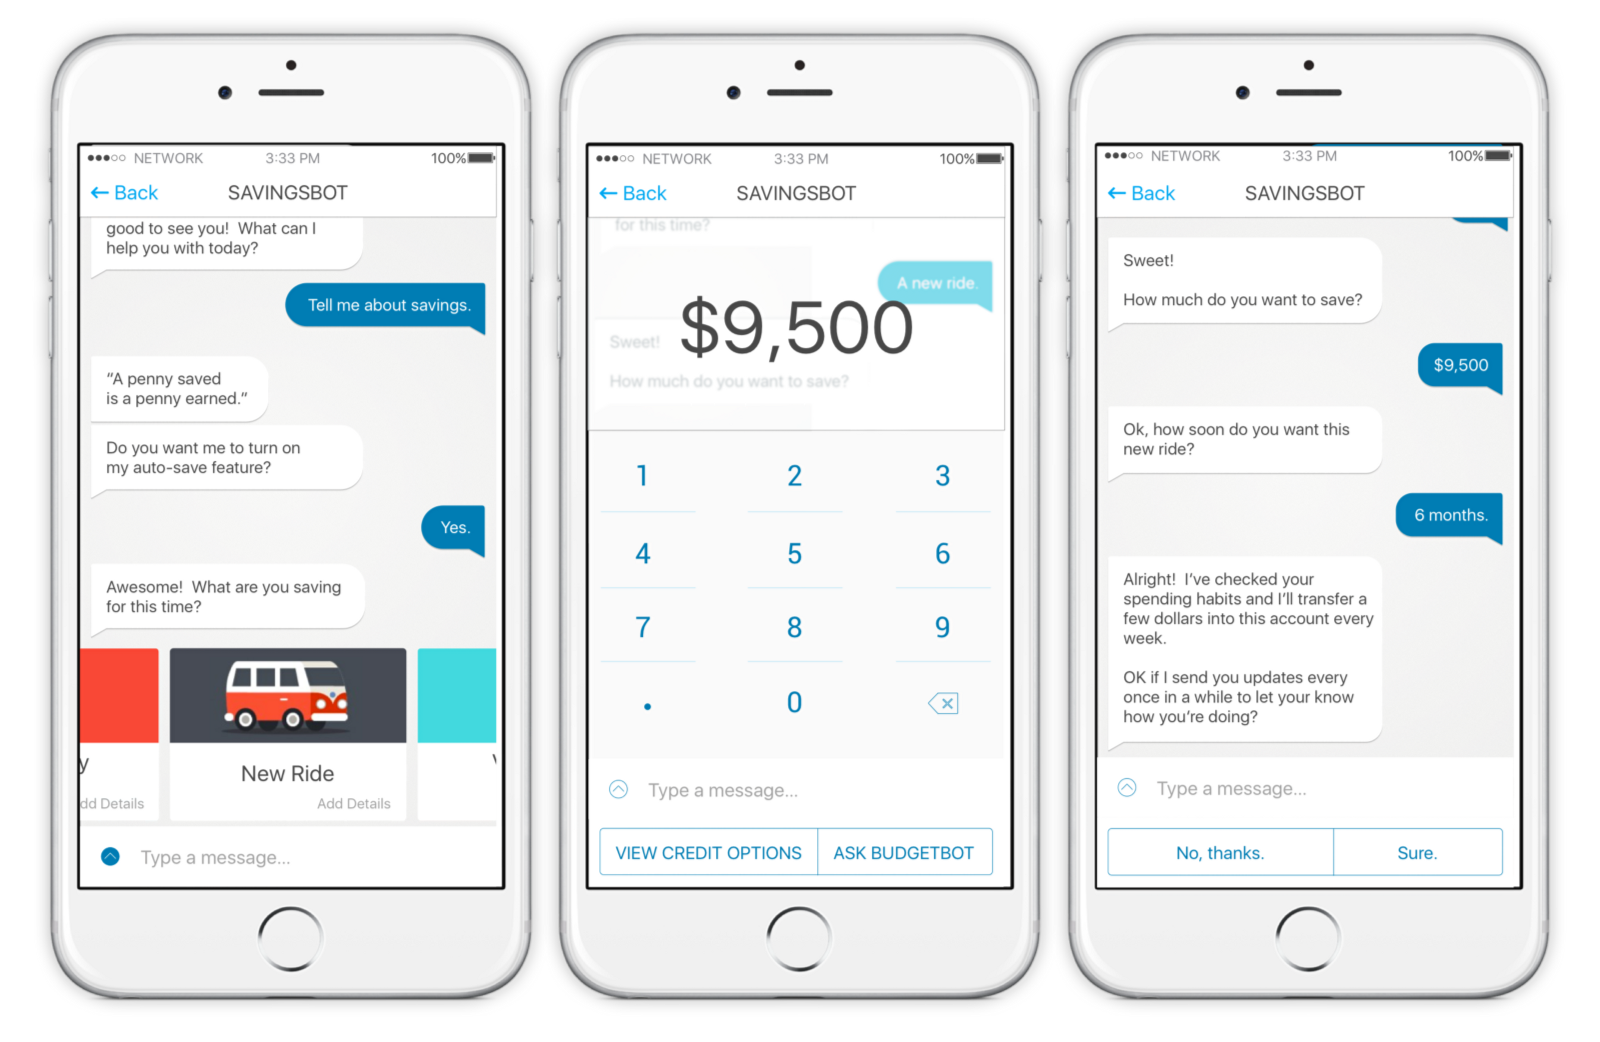 Chatbots in Banking Can Play the Role of 'Financial Concierge'